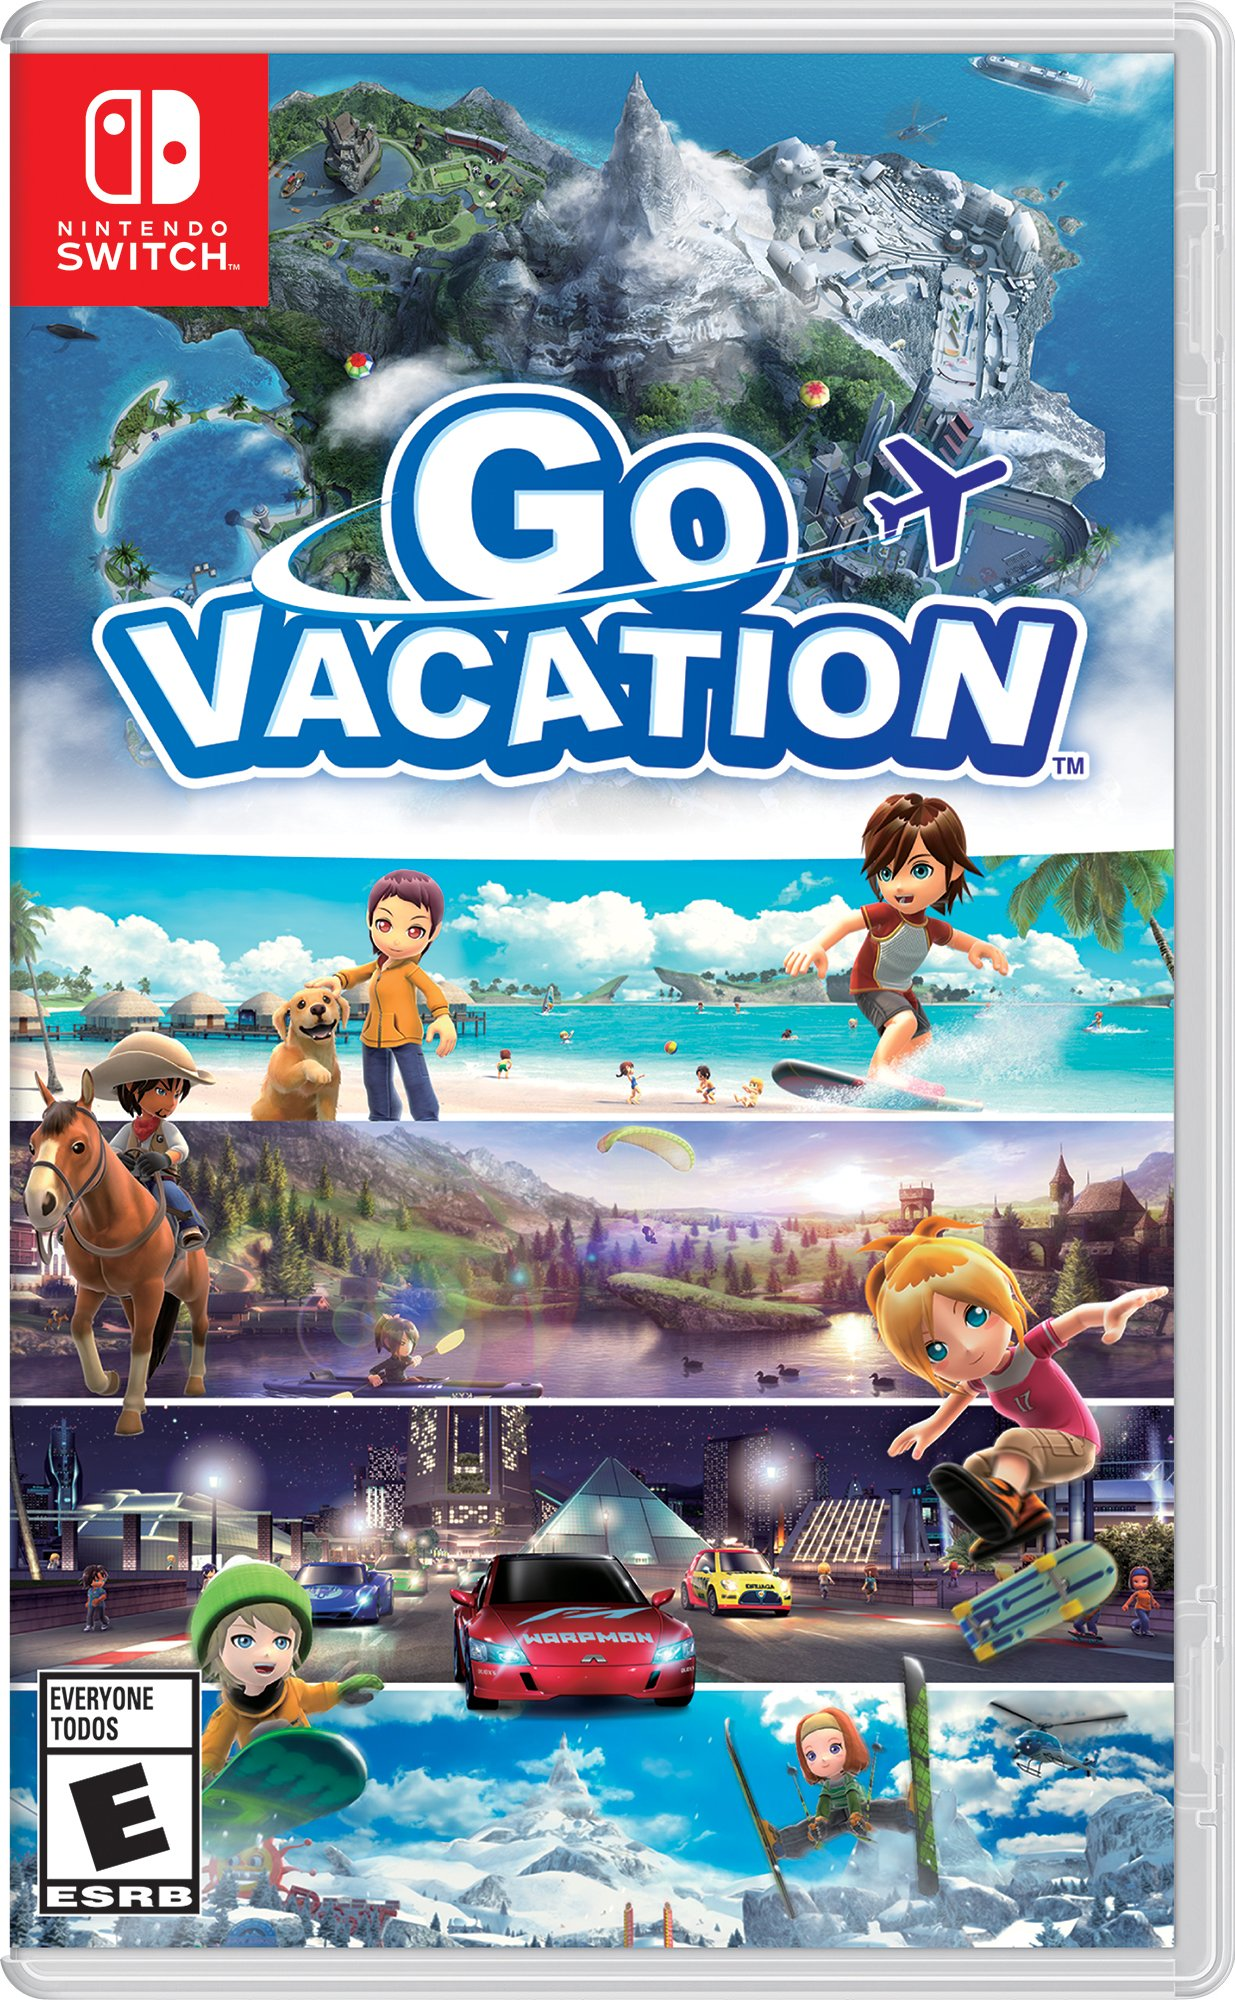 Amazon.com: Go Vacation - Nintendo Switch: Nintendo of America ...